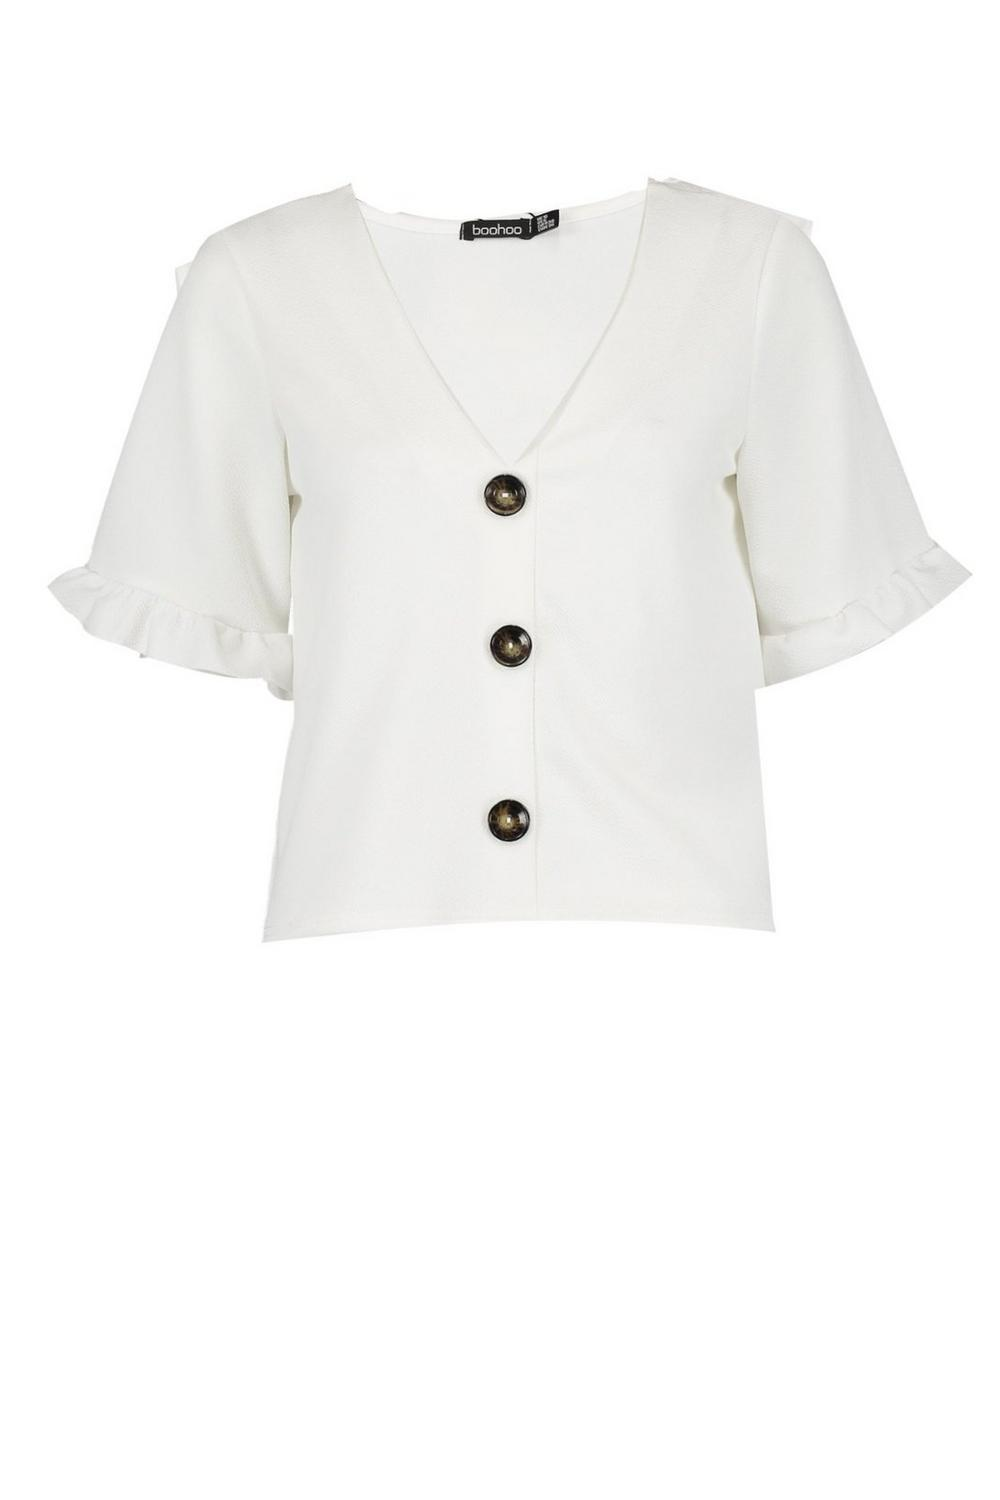 Button Frill white Sleeve Top Down prp8qvwxa